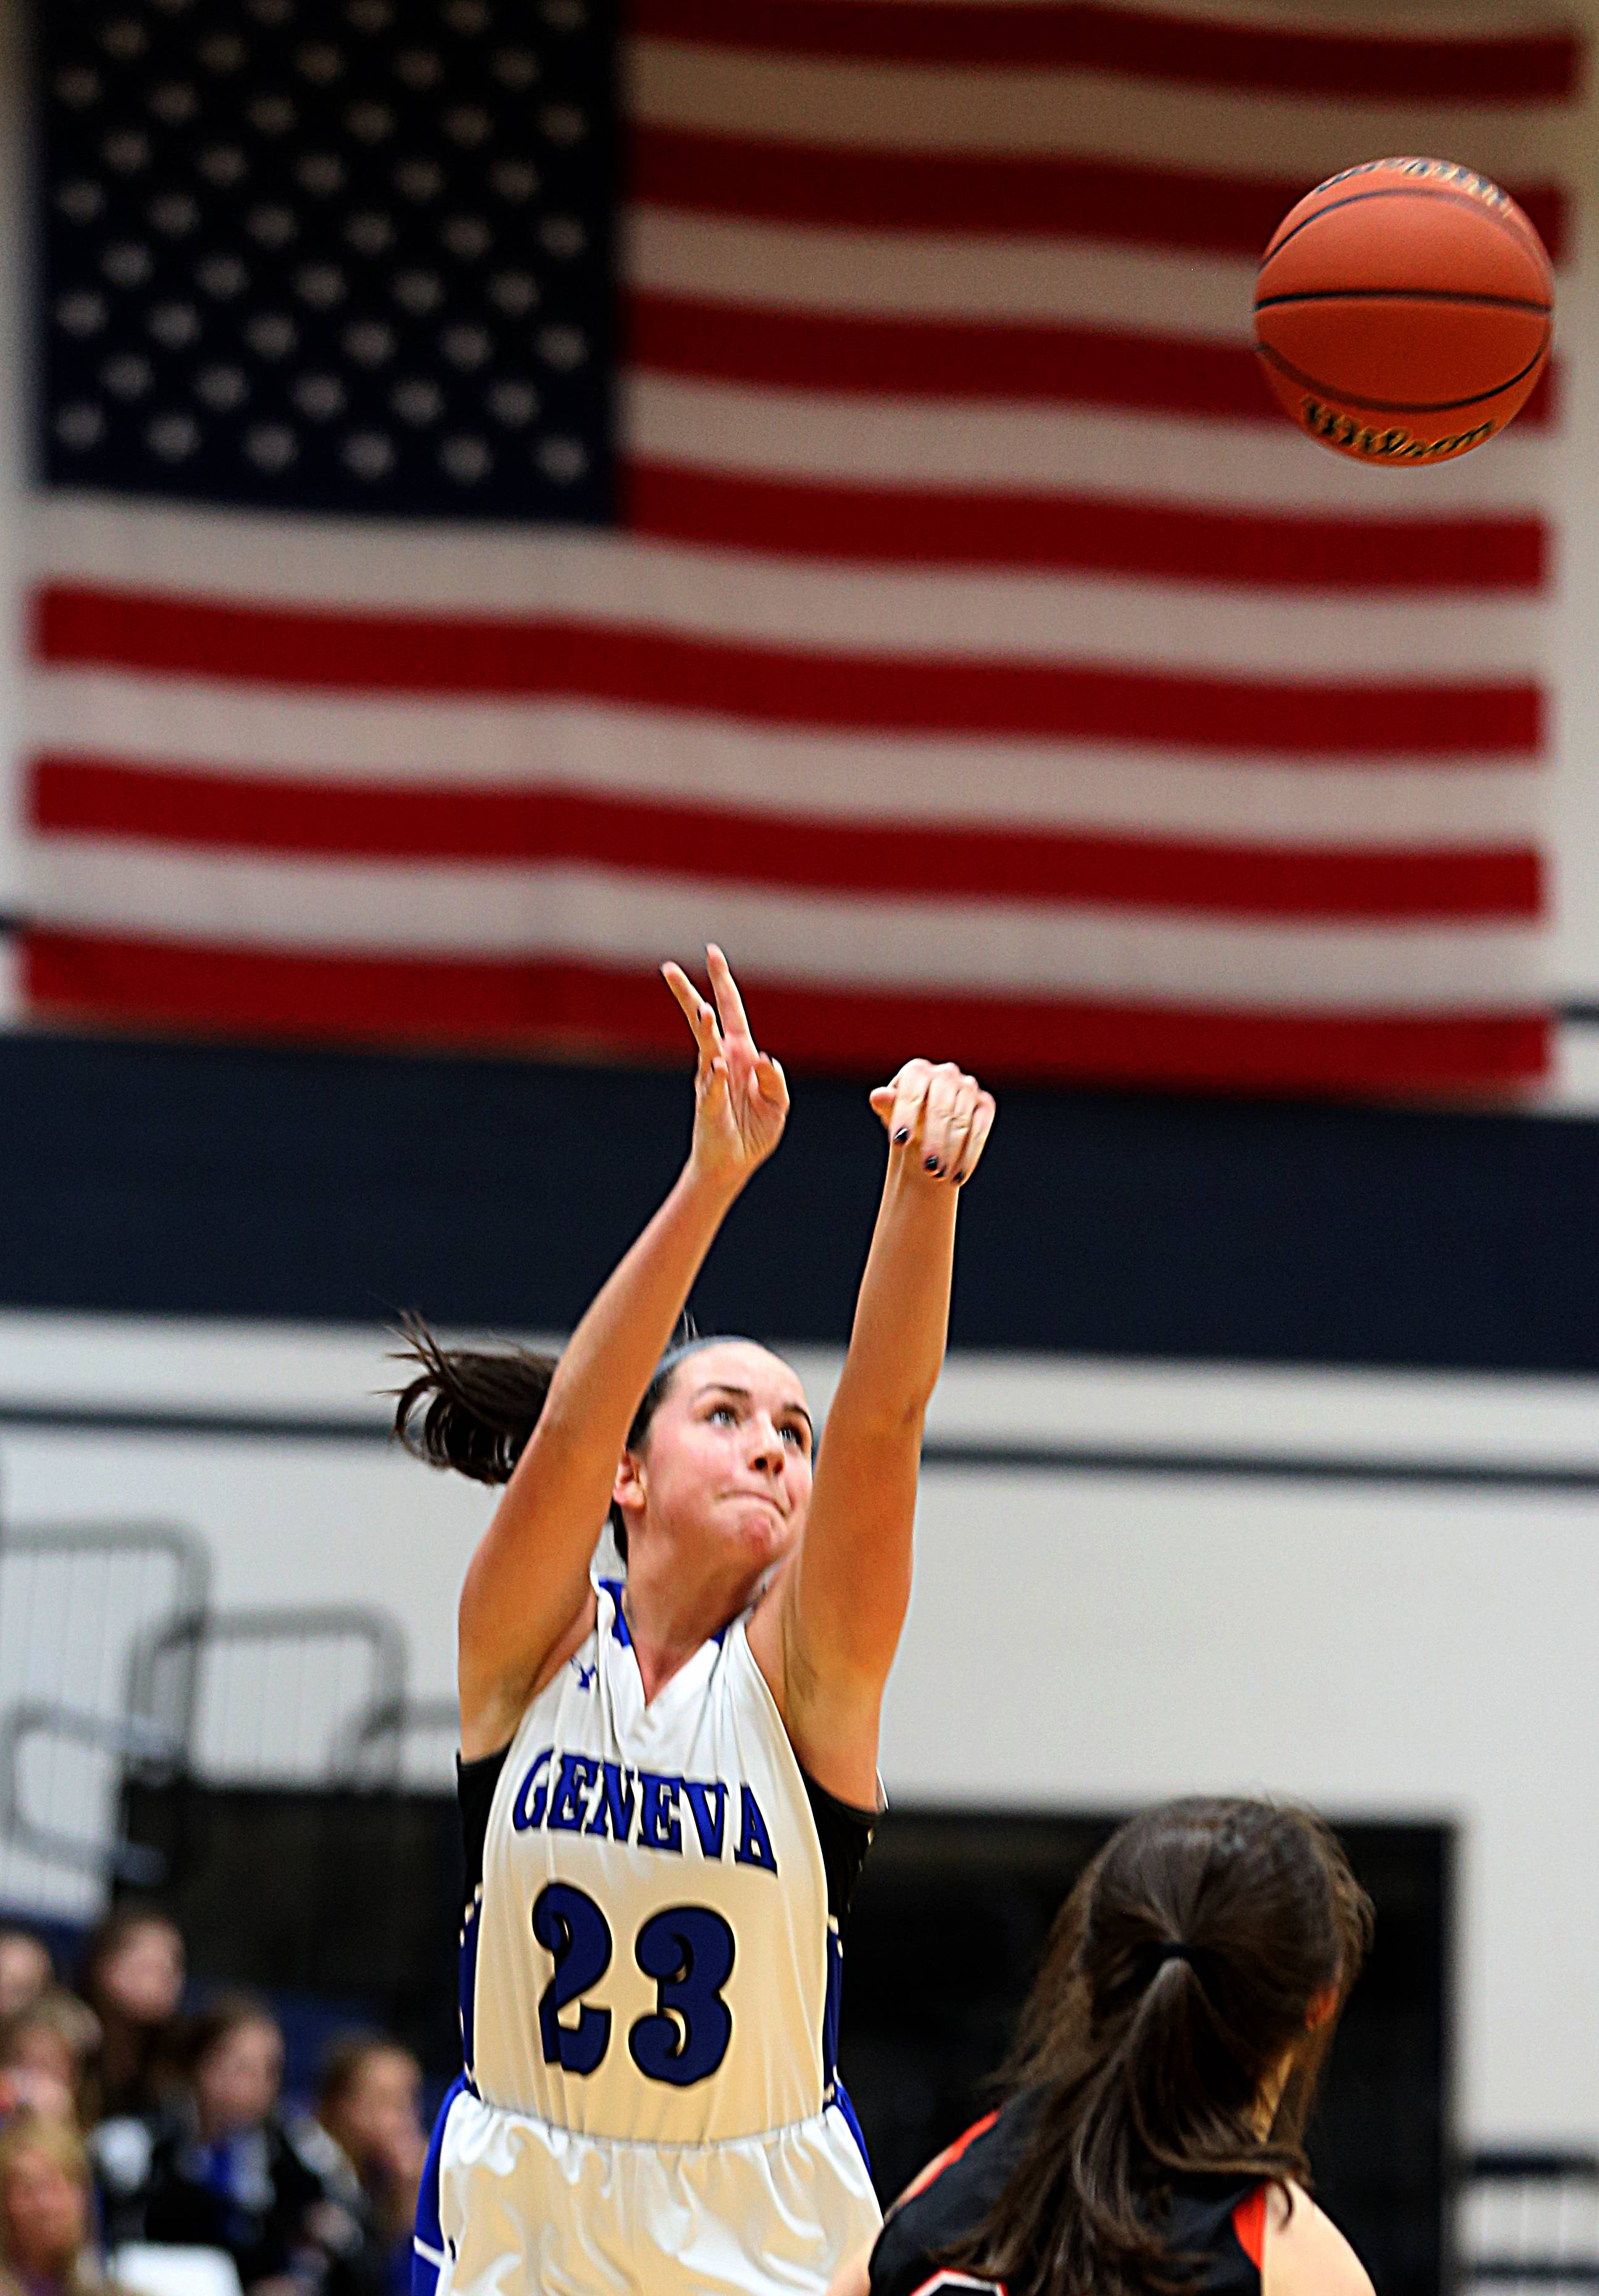 Geneva's Margaret Whitley sets up a three-point shot against Wheaton Warrenville South during the Class 4A sectional title game at Lake Park High School in Roselle Thursday night.